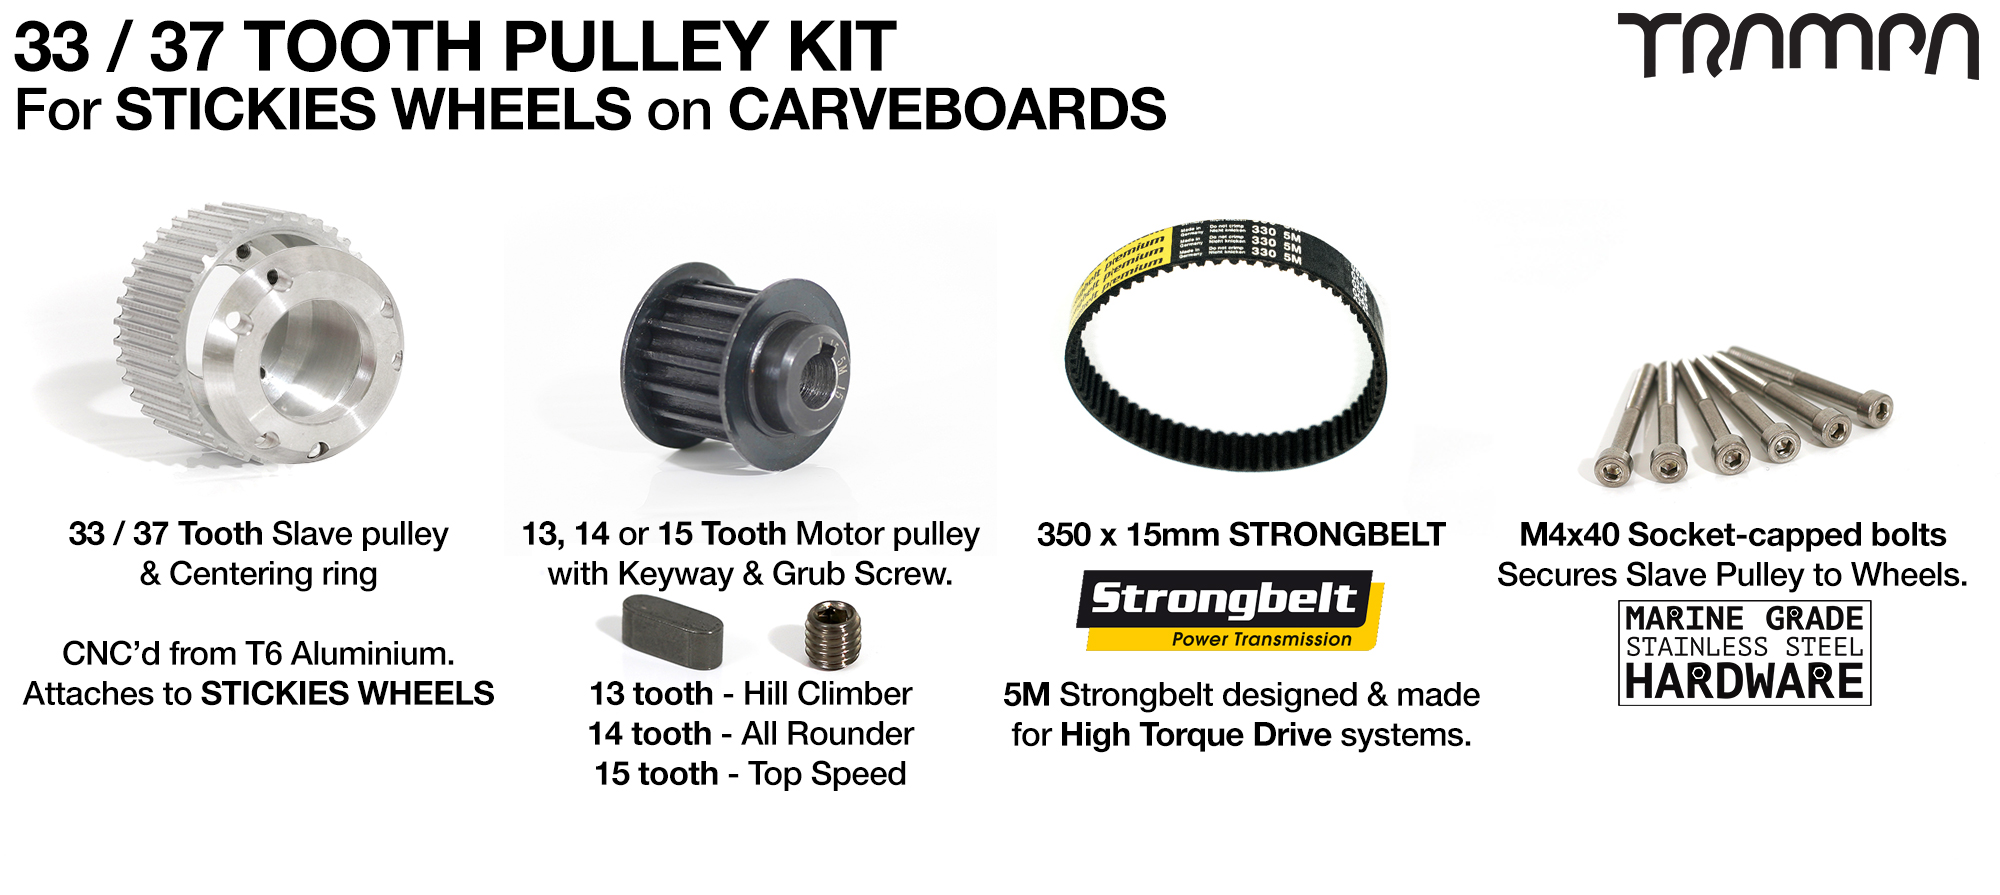 STREET CARVER 33 or 37 Tooth Pulley Kit with 330mm Belt for STICKIES Wheels